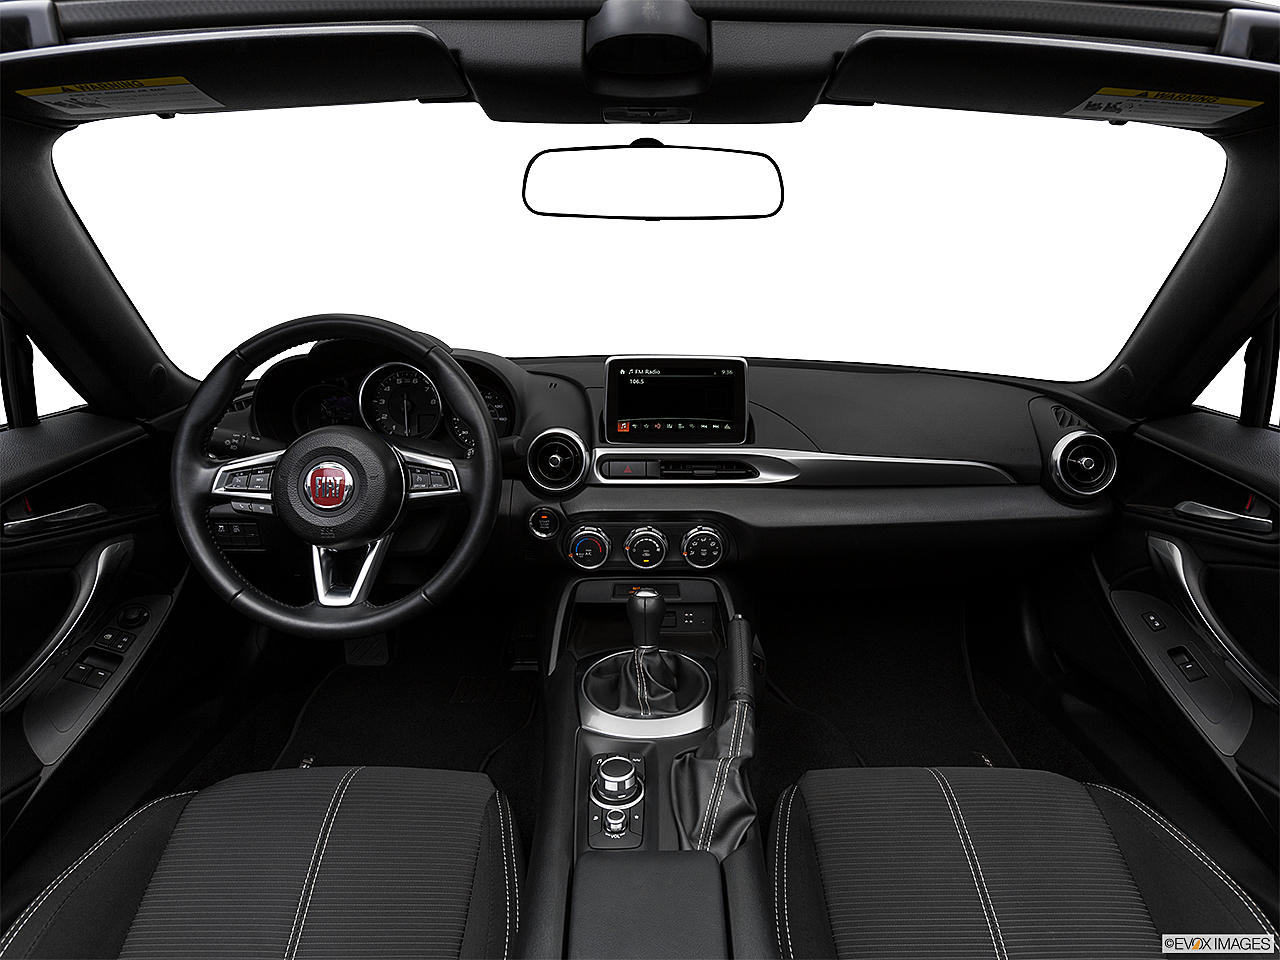 2018 Fiat 124 Spider Classica, centered wide dash shot